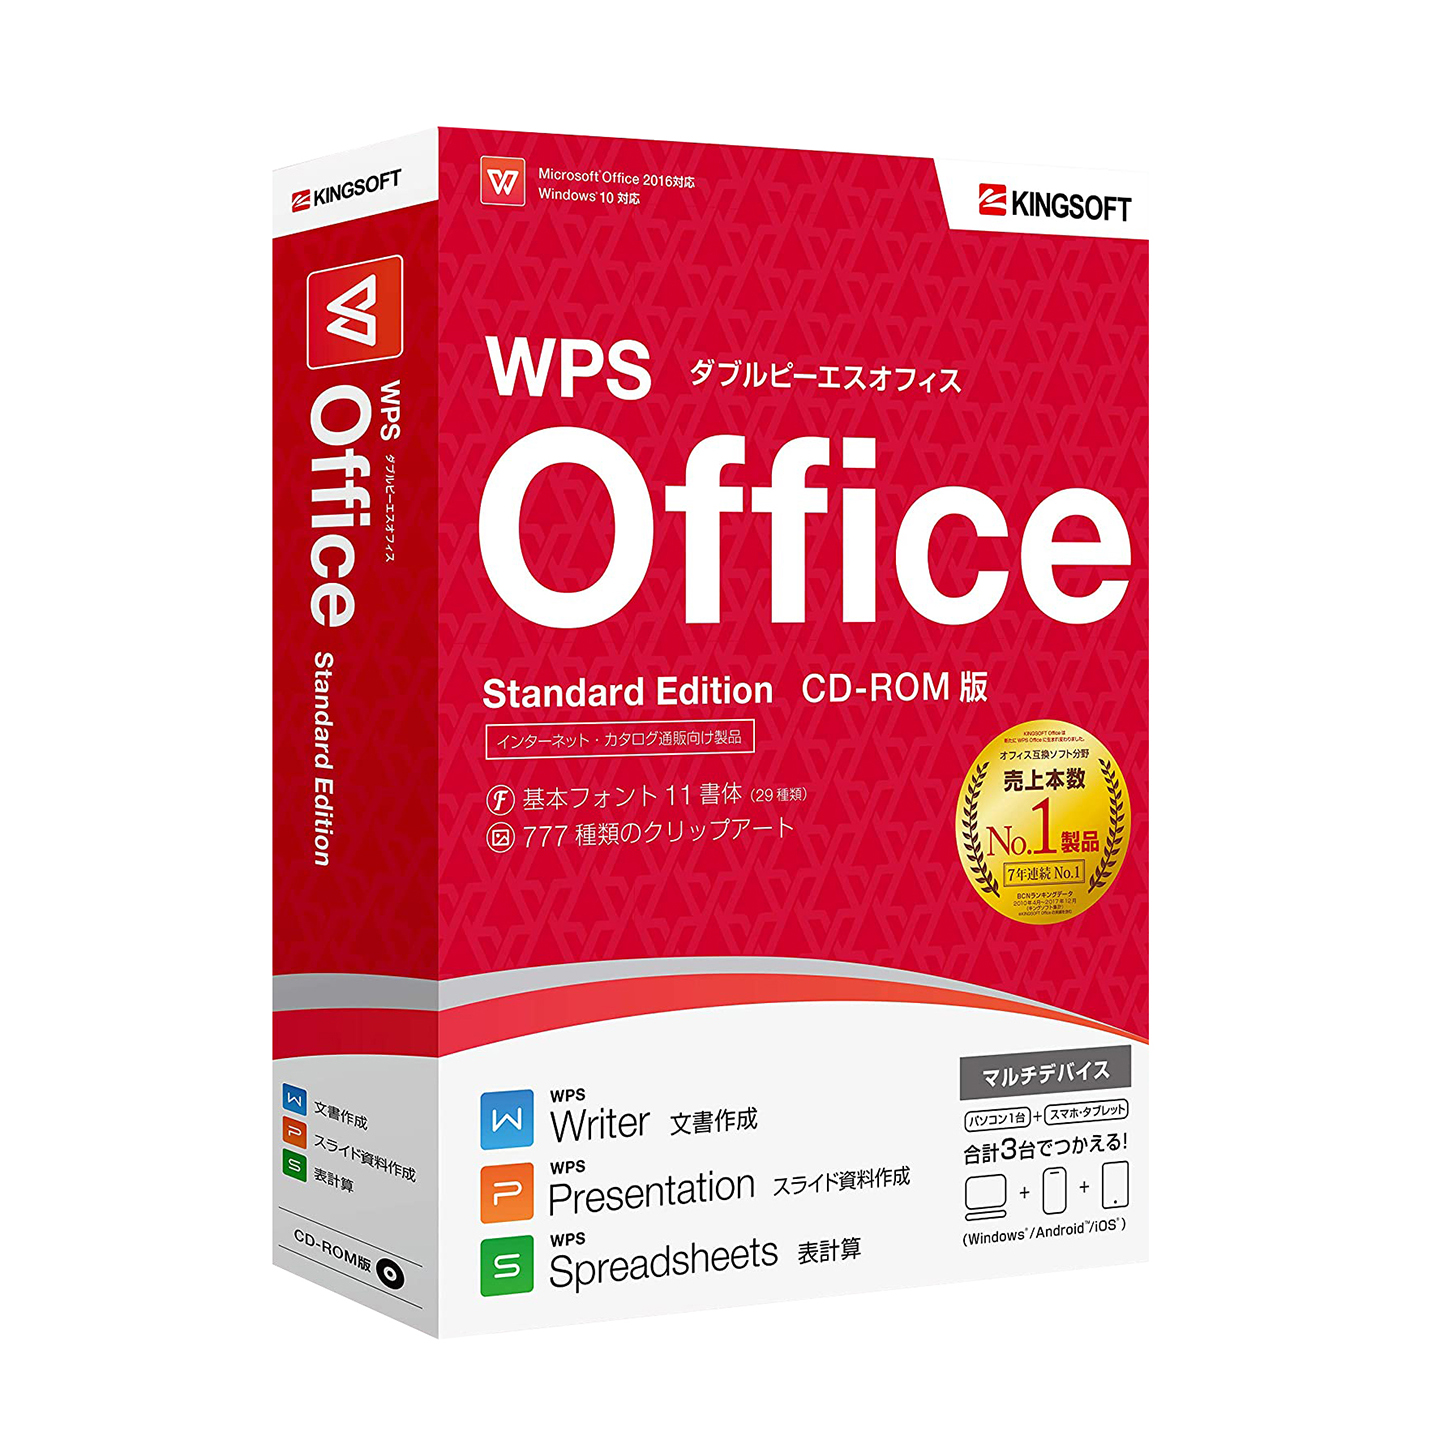 WPS Offise Standard Edition